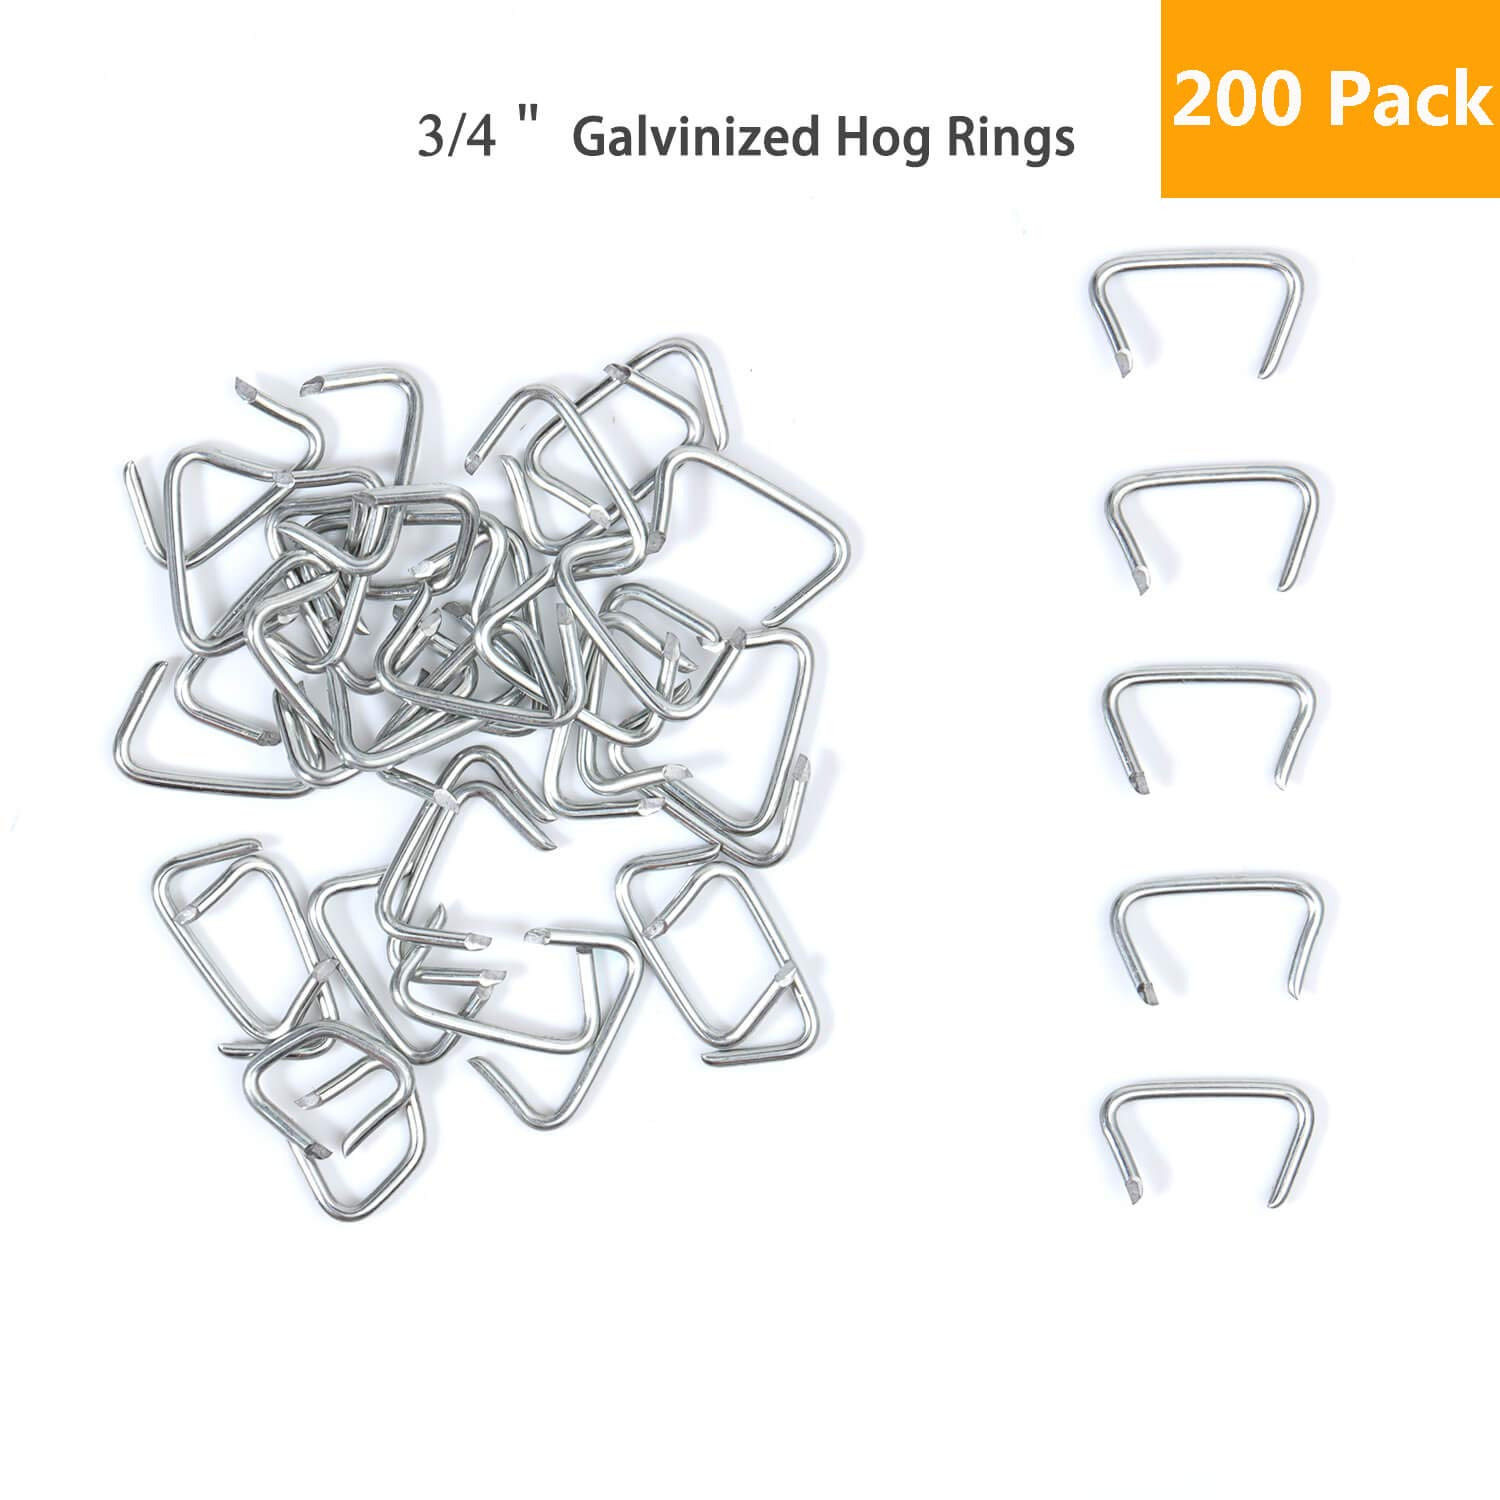 Hog Ring Pliers Kit Perfect Fo 200 Pack Of Galvanized Steel Hog Rings Included